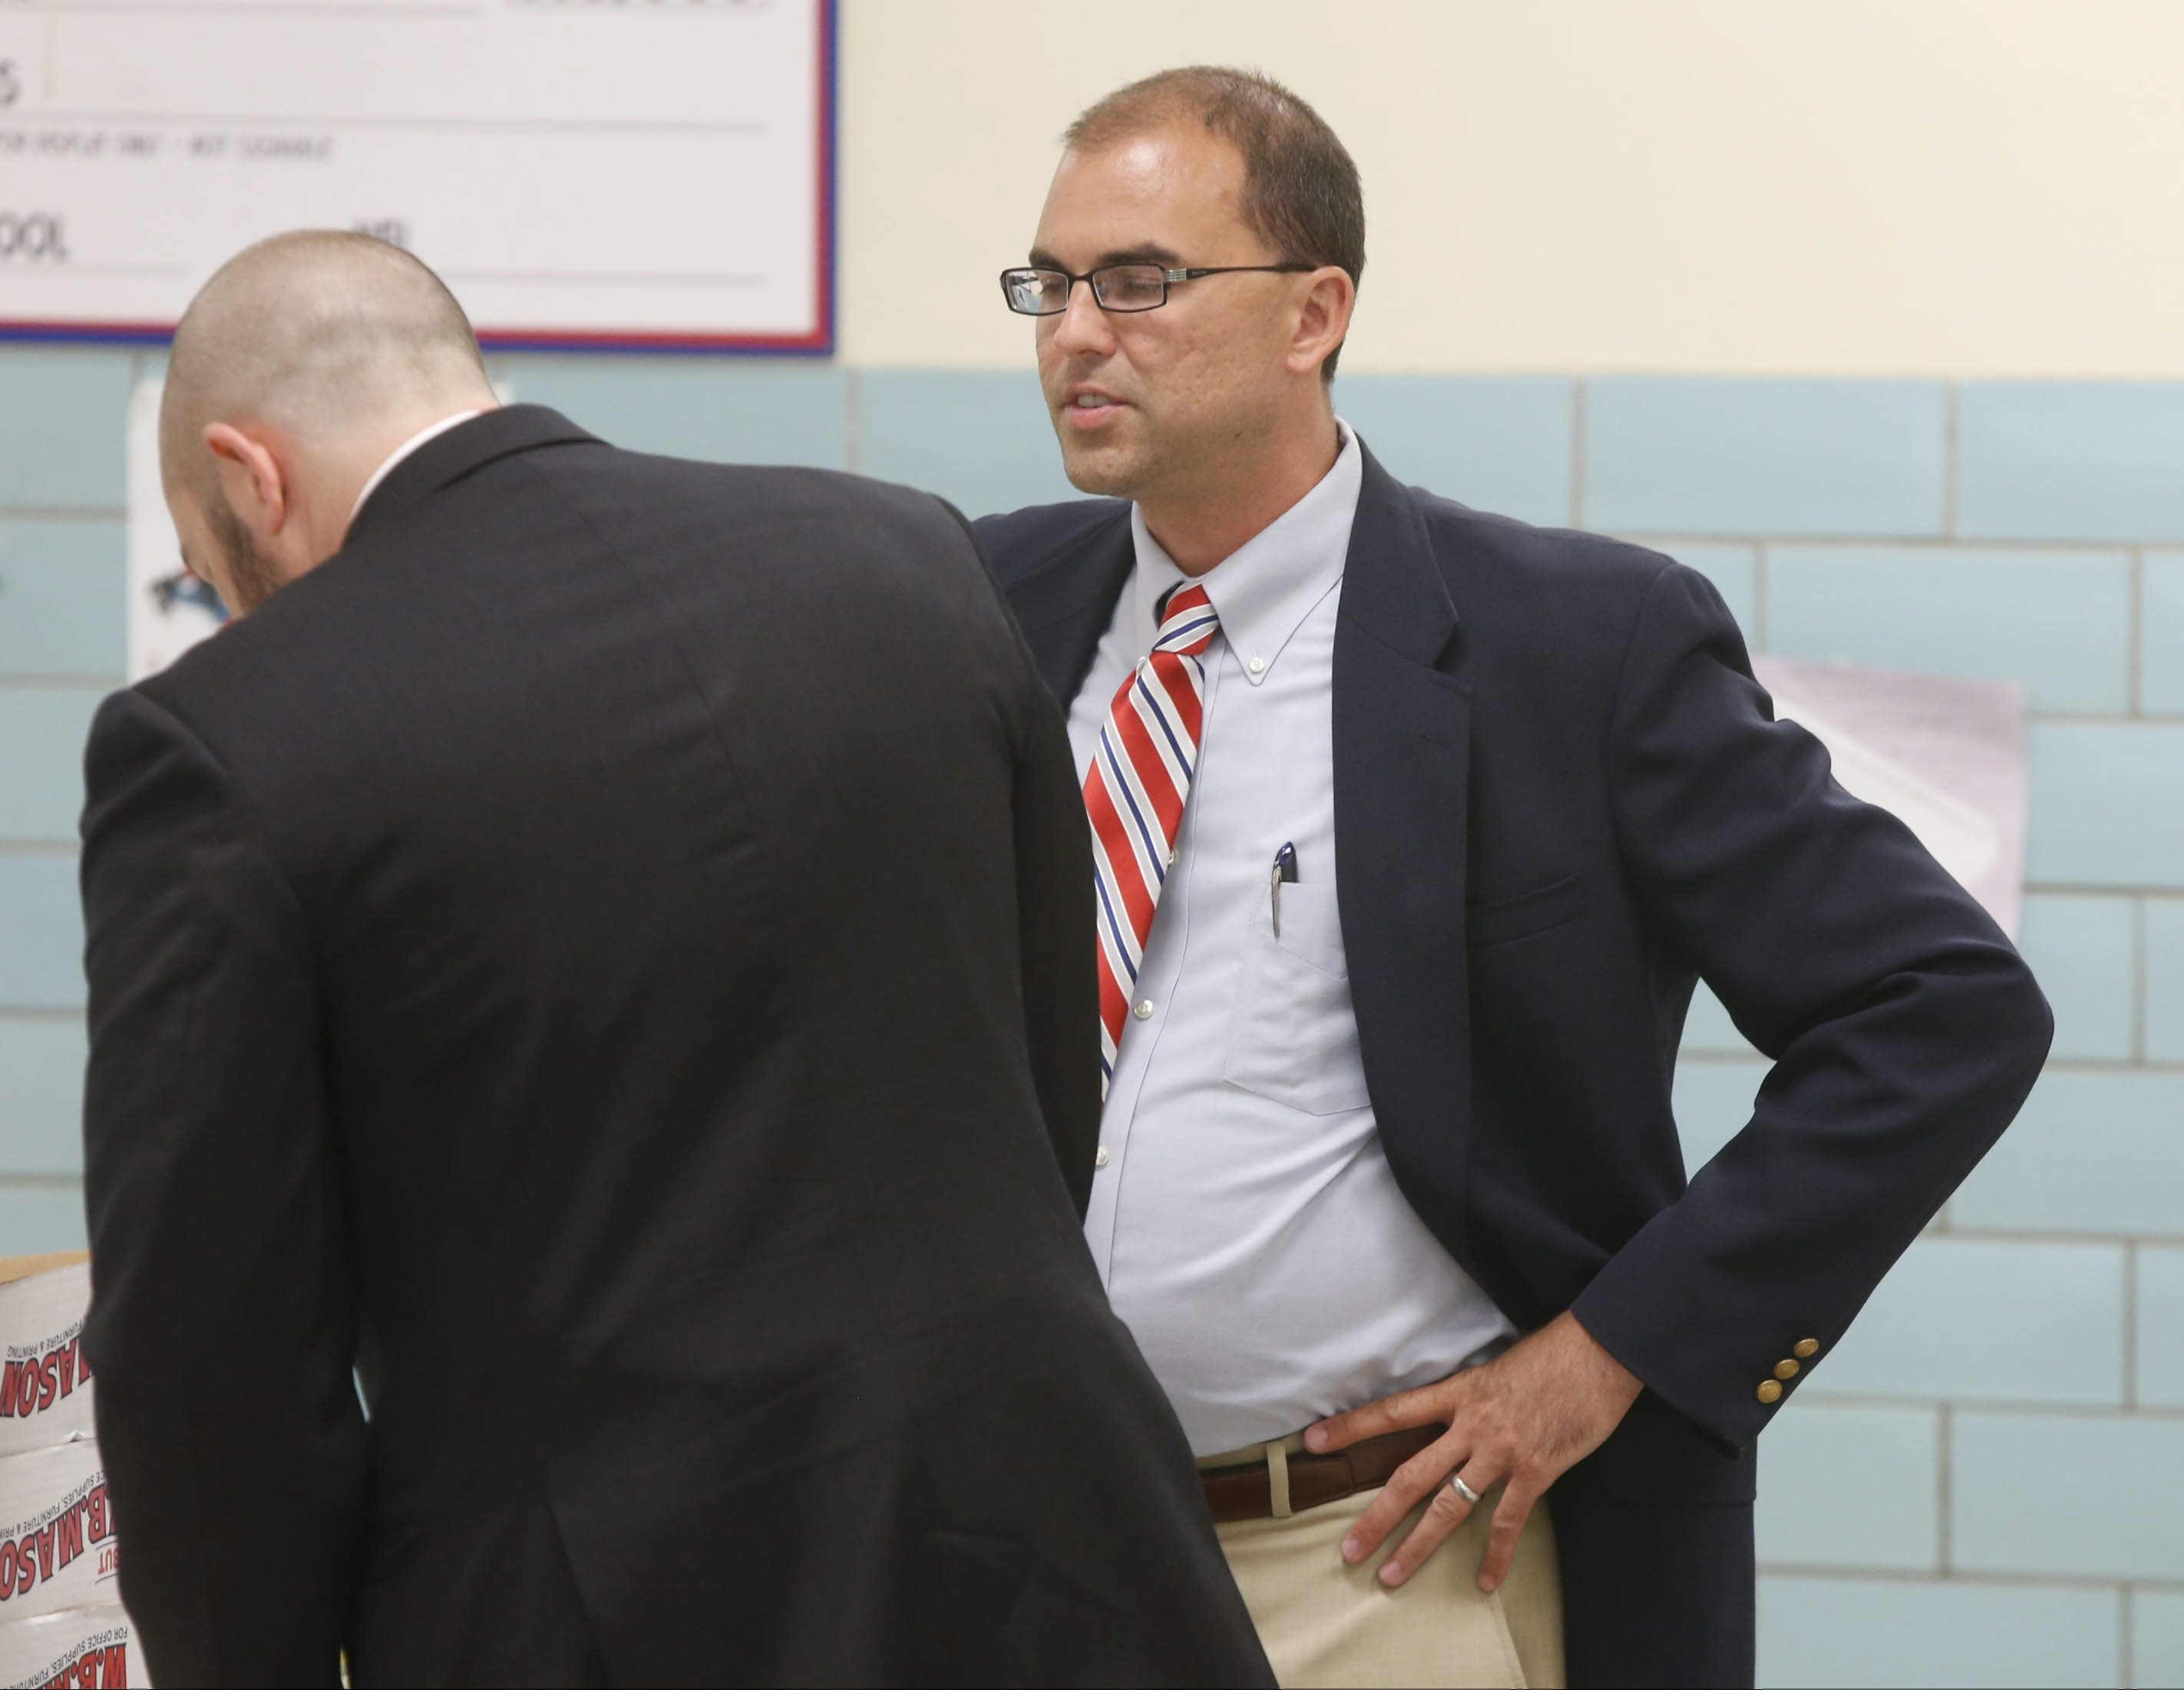 Source says Hamburg School Superintendent Richard Jetter, now on leave, admitted causing damage to his car that was originally blamed on vandalism. He's shown here speaking with district attorney Andrew Freedman, left.